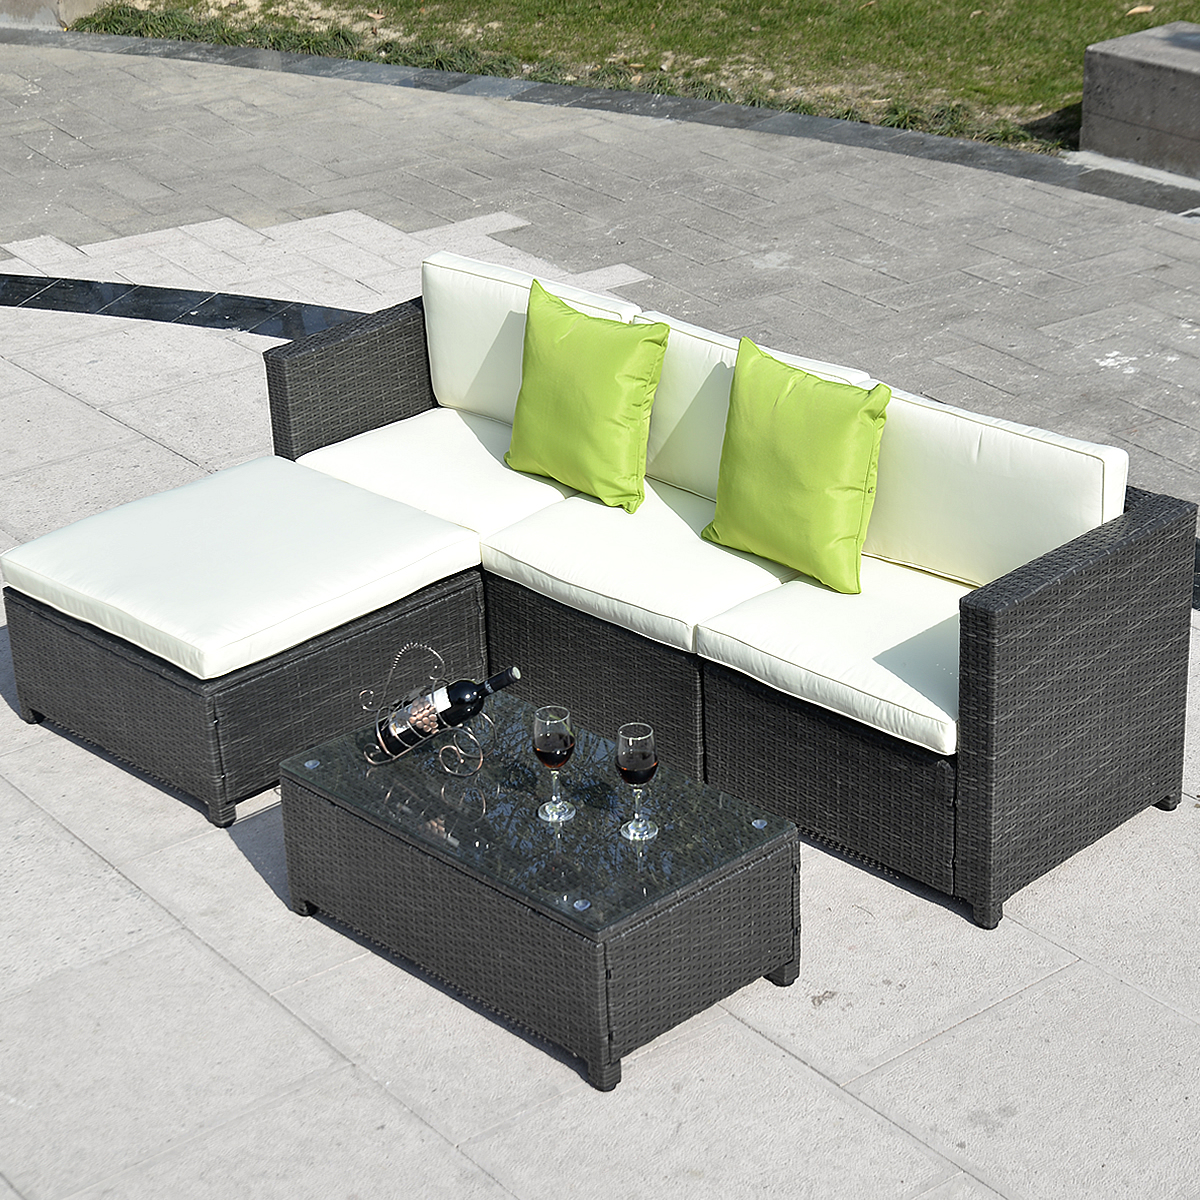 Costway Outdoor Patio 5pc Furniture Sectional Pe Wicker Rattan Sofa Set  Deck Couch Black (Black)   Walmart.com